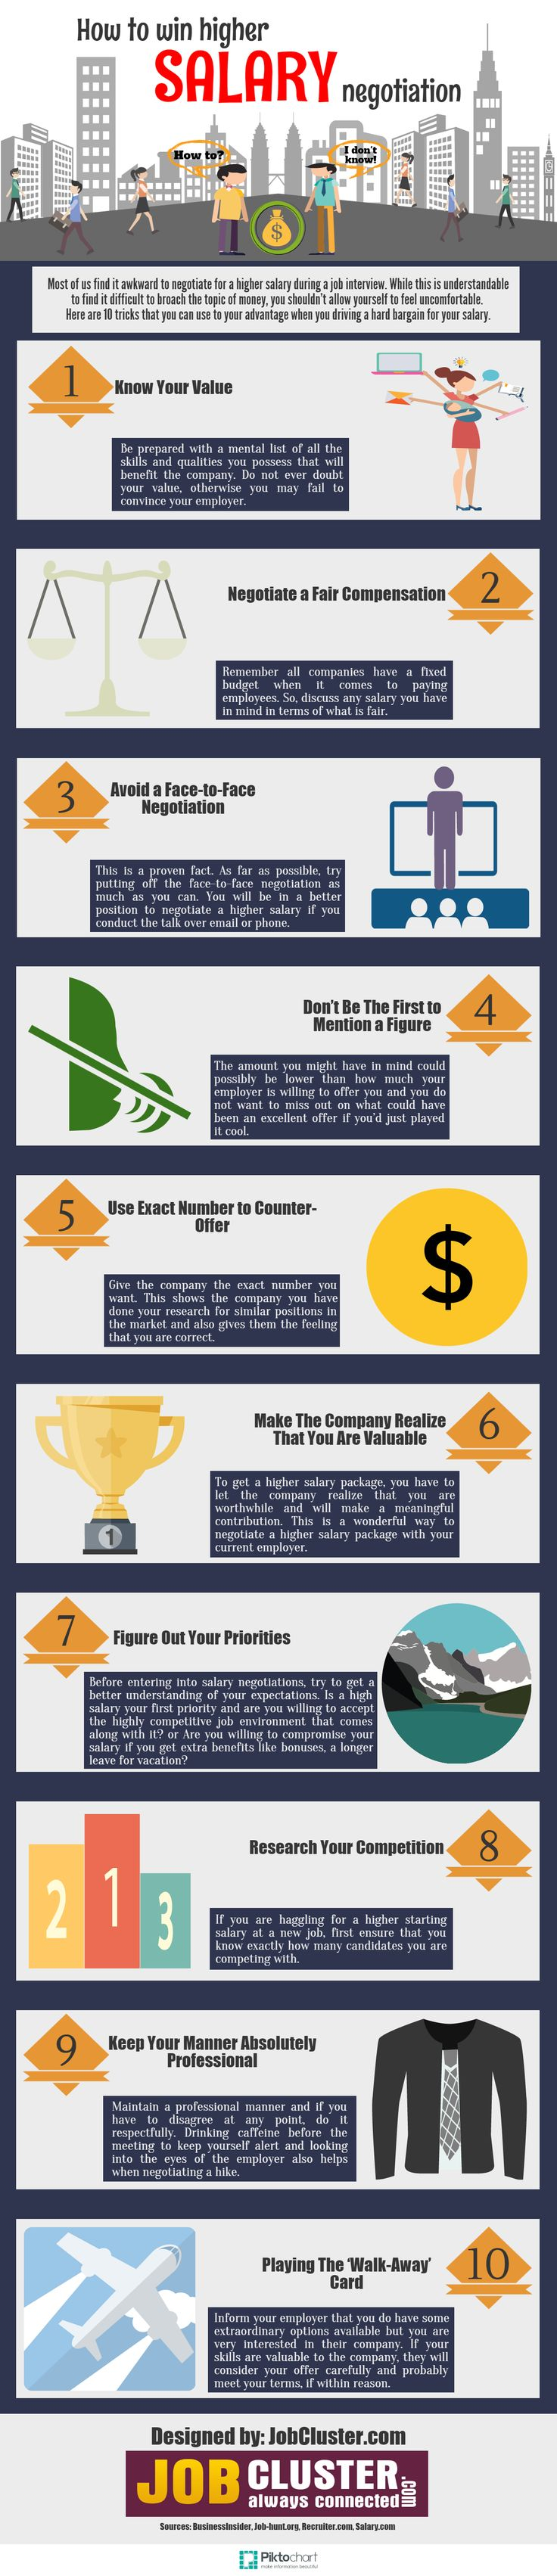 How To Negotiate A Higher Salary At A Job Interview |via`tko MakeUseOf